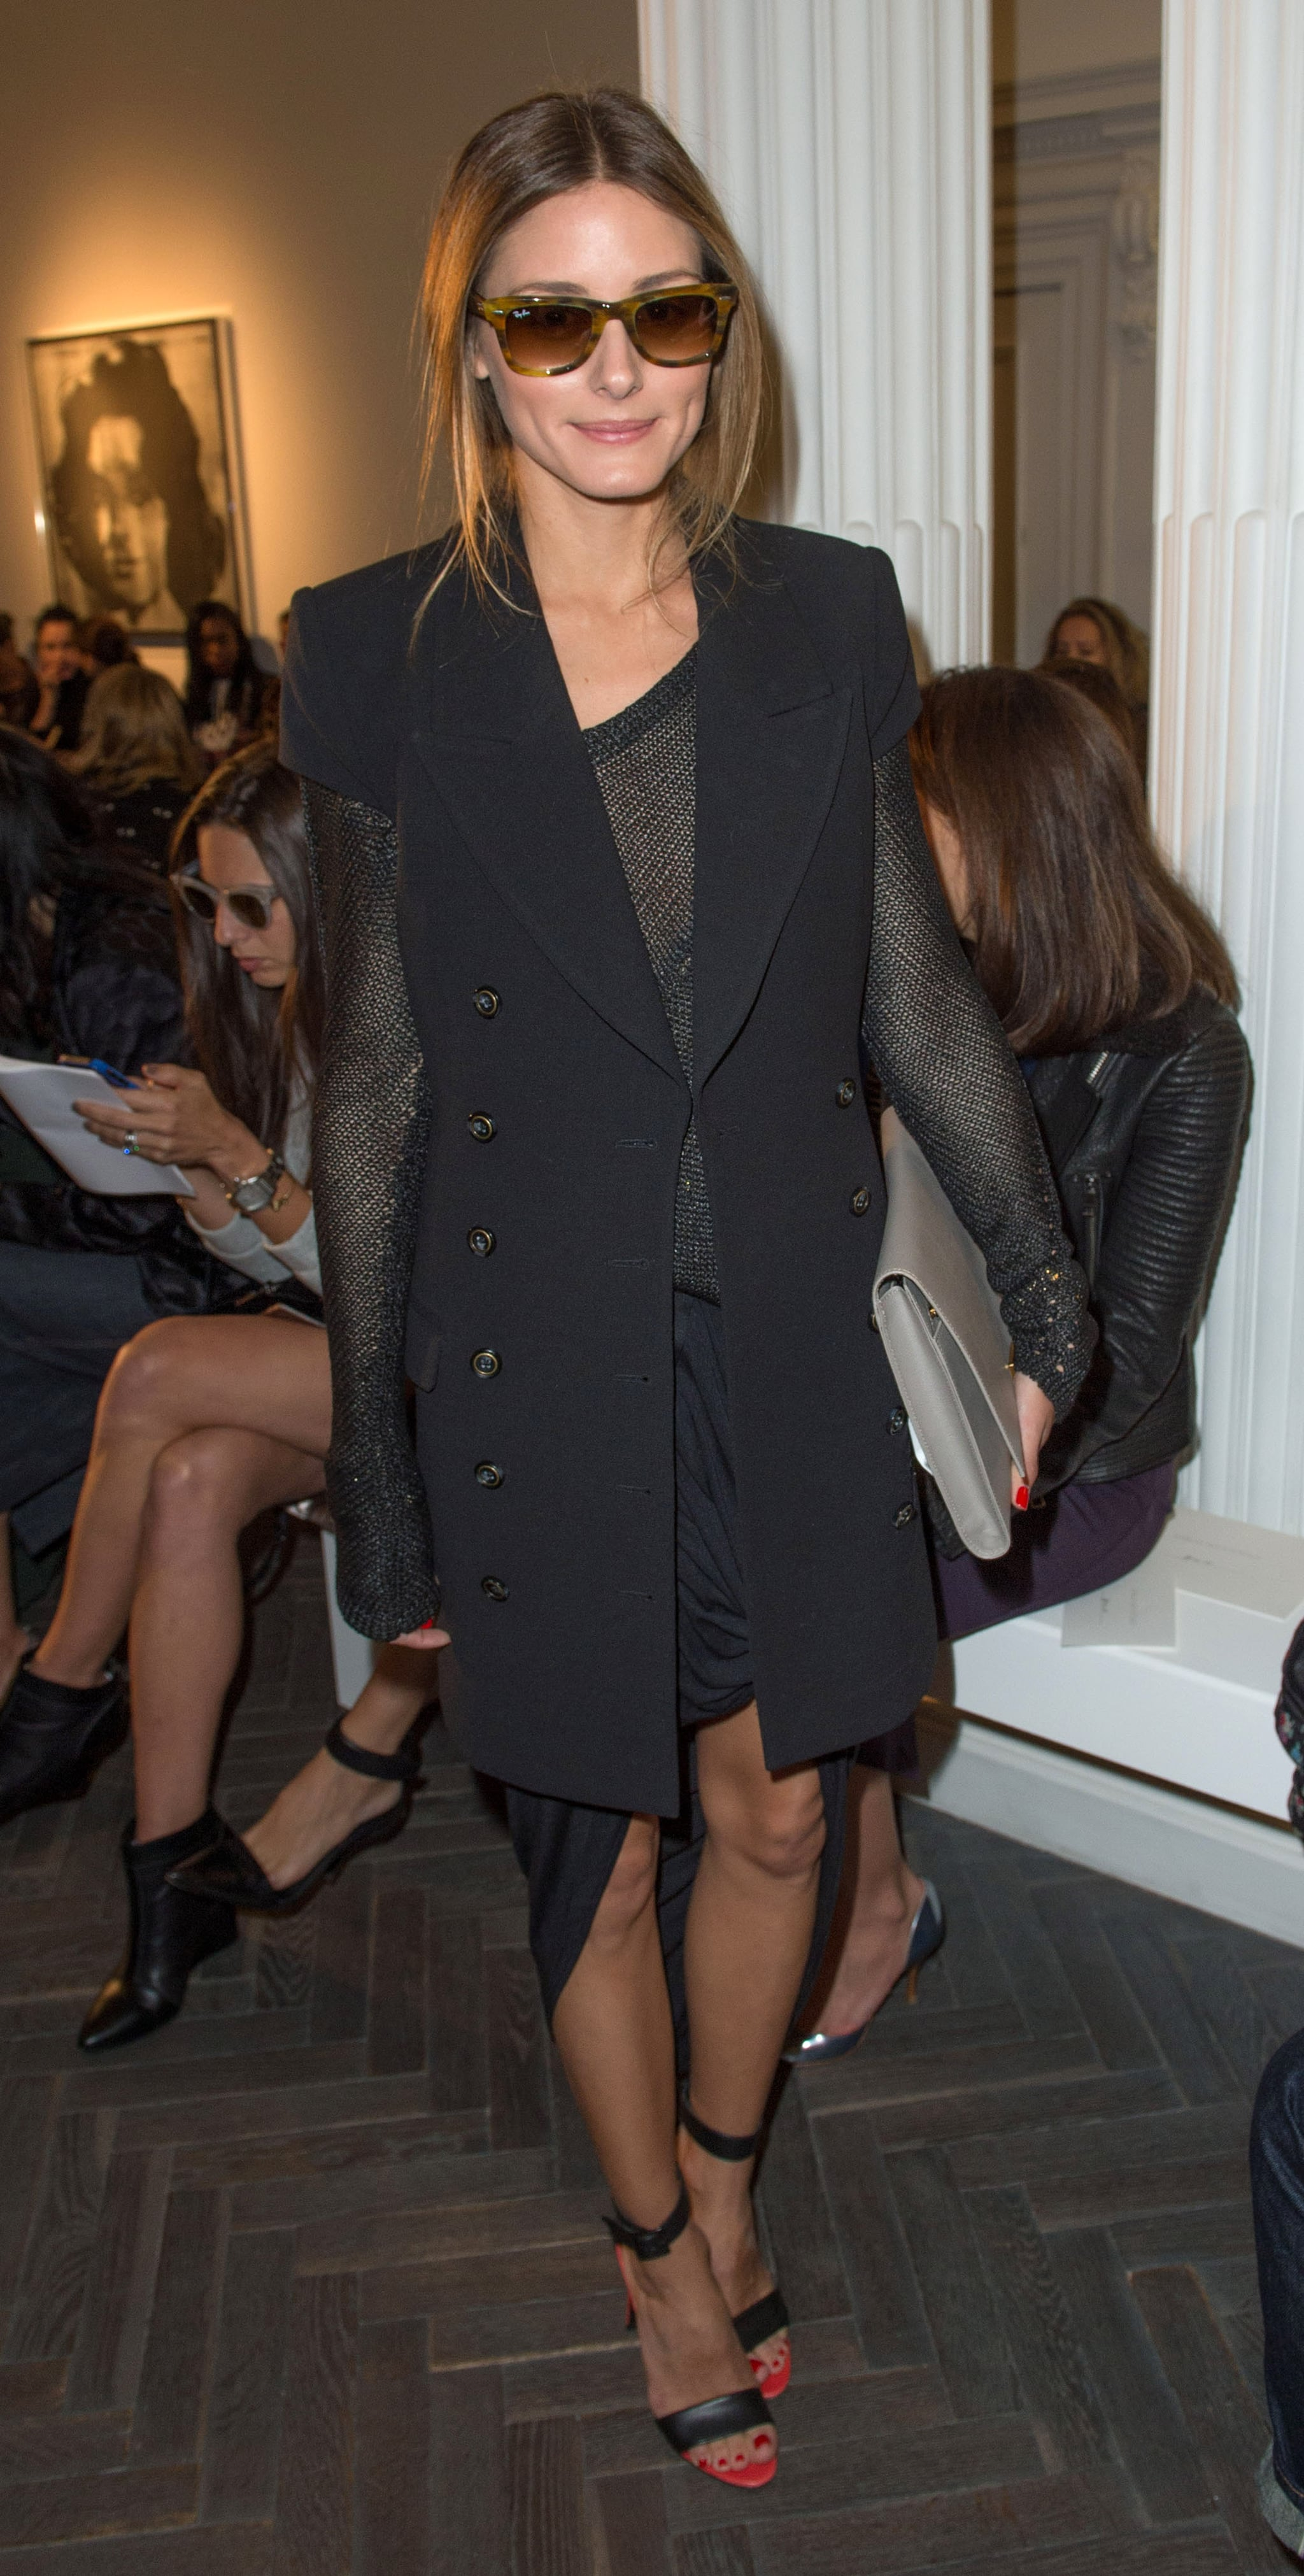 She complemented her military-inspired short-sleeved coat again in London at Emilia Wickstead with an edgy, slinky top and skirt.